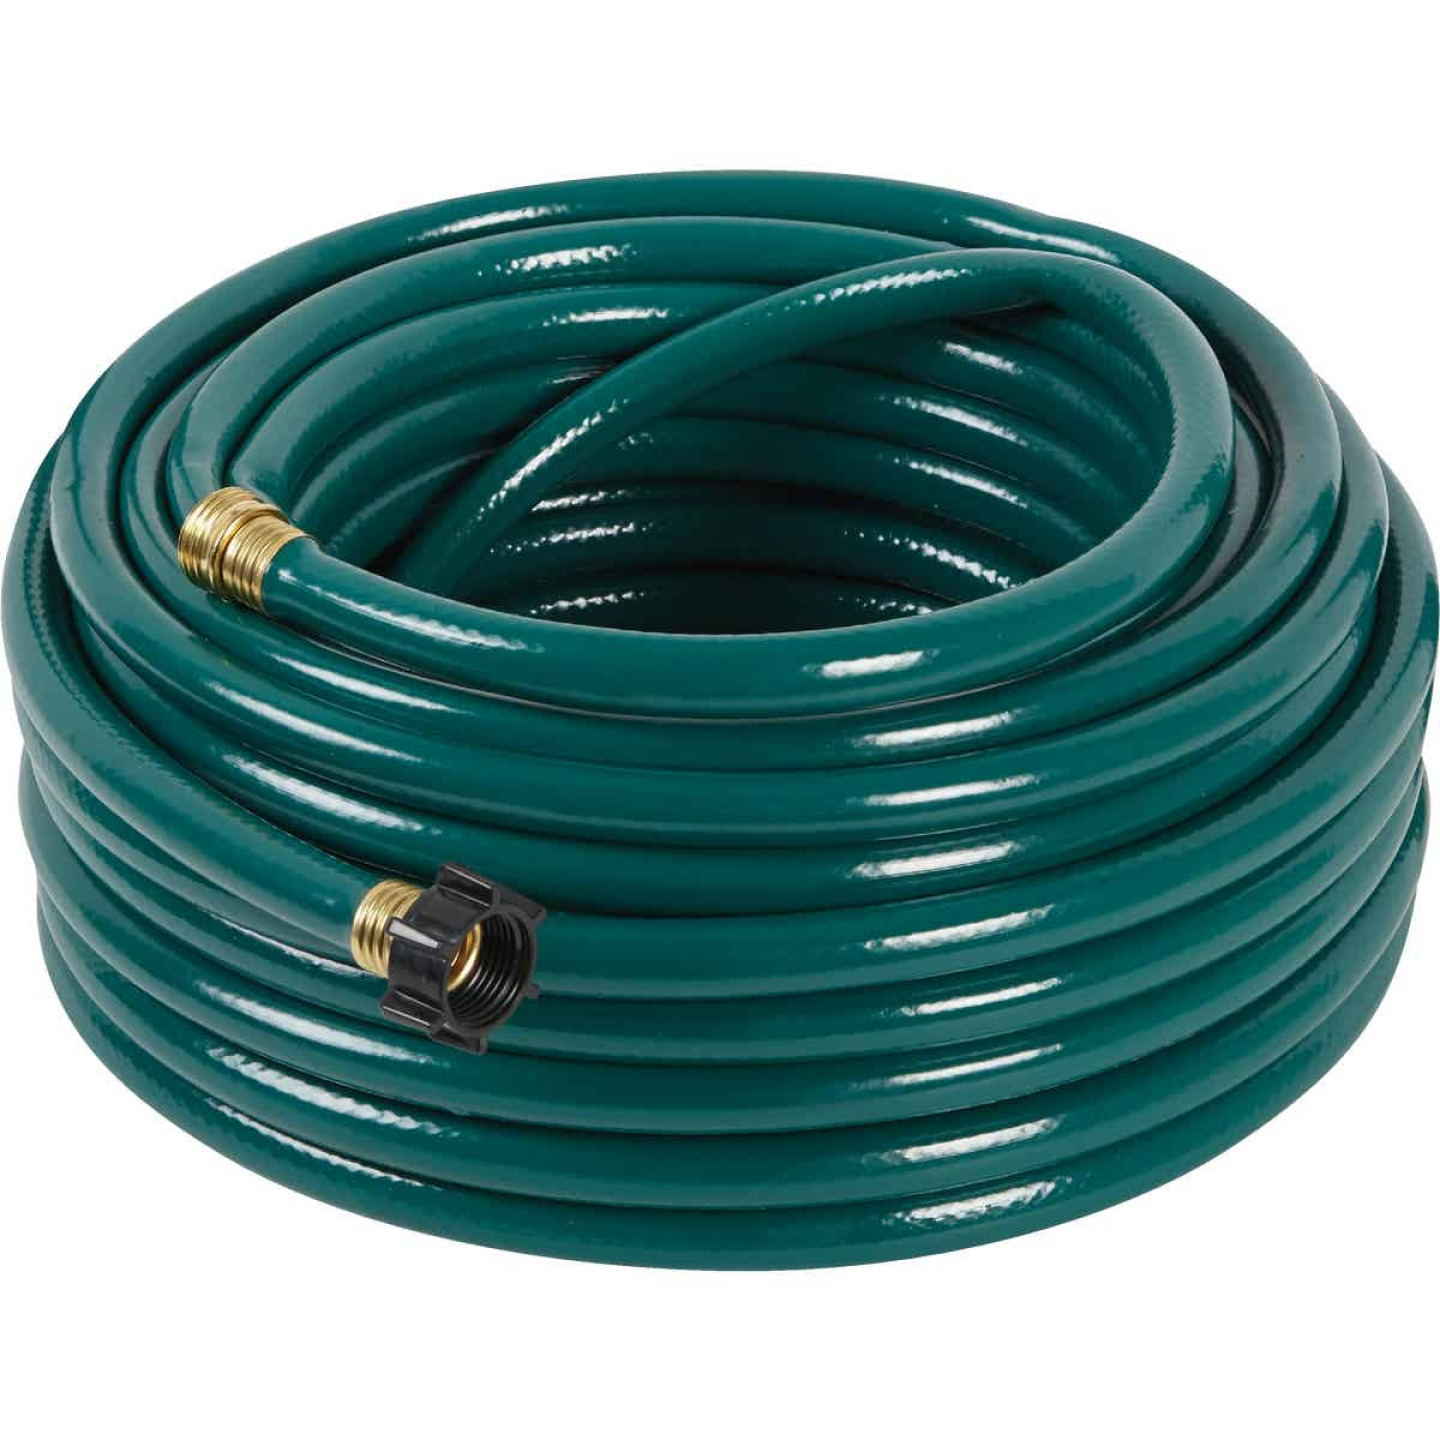 Best Garden 5/8 In. Dia. x 75 Ft. L. Light-Duty Garden Hose Image 1